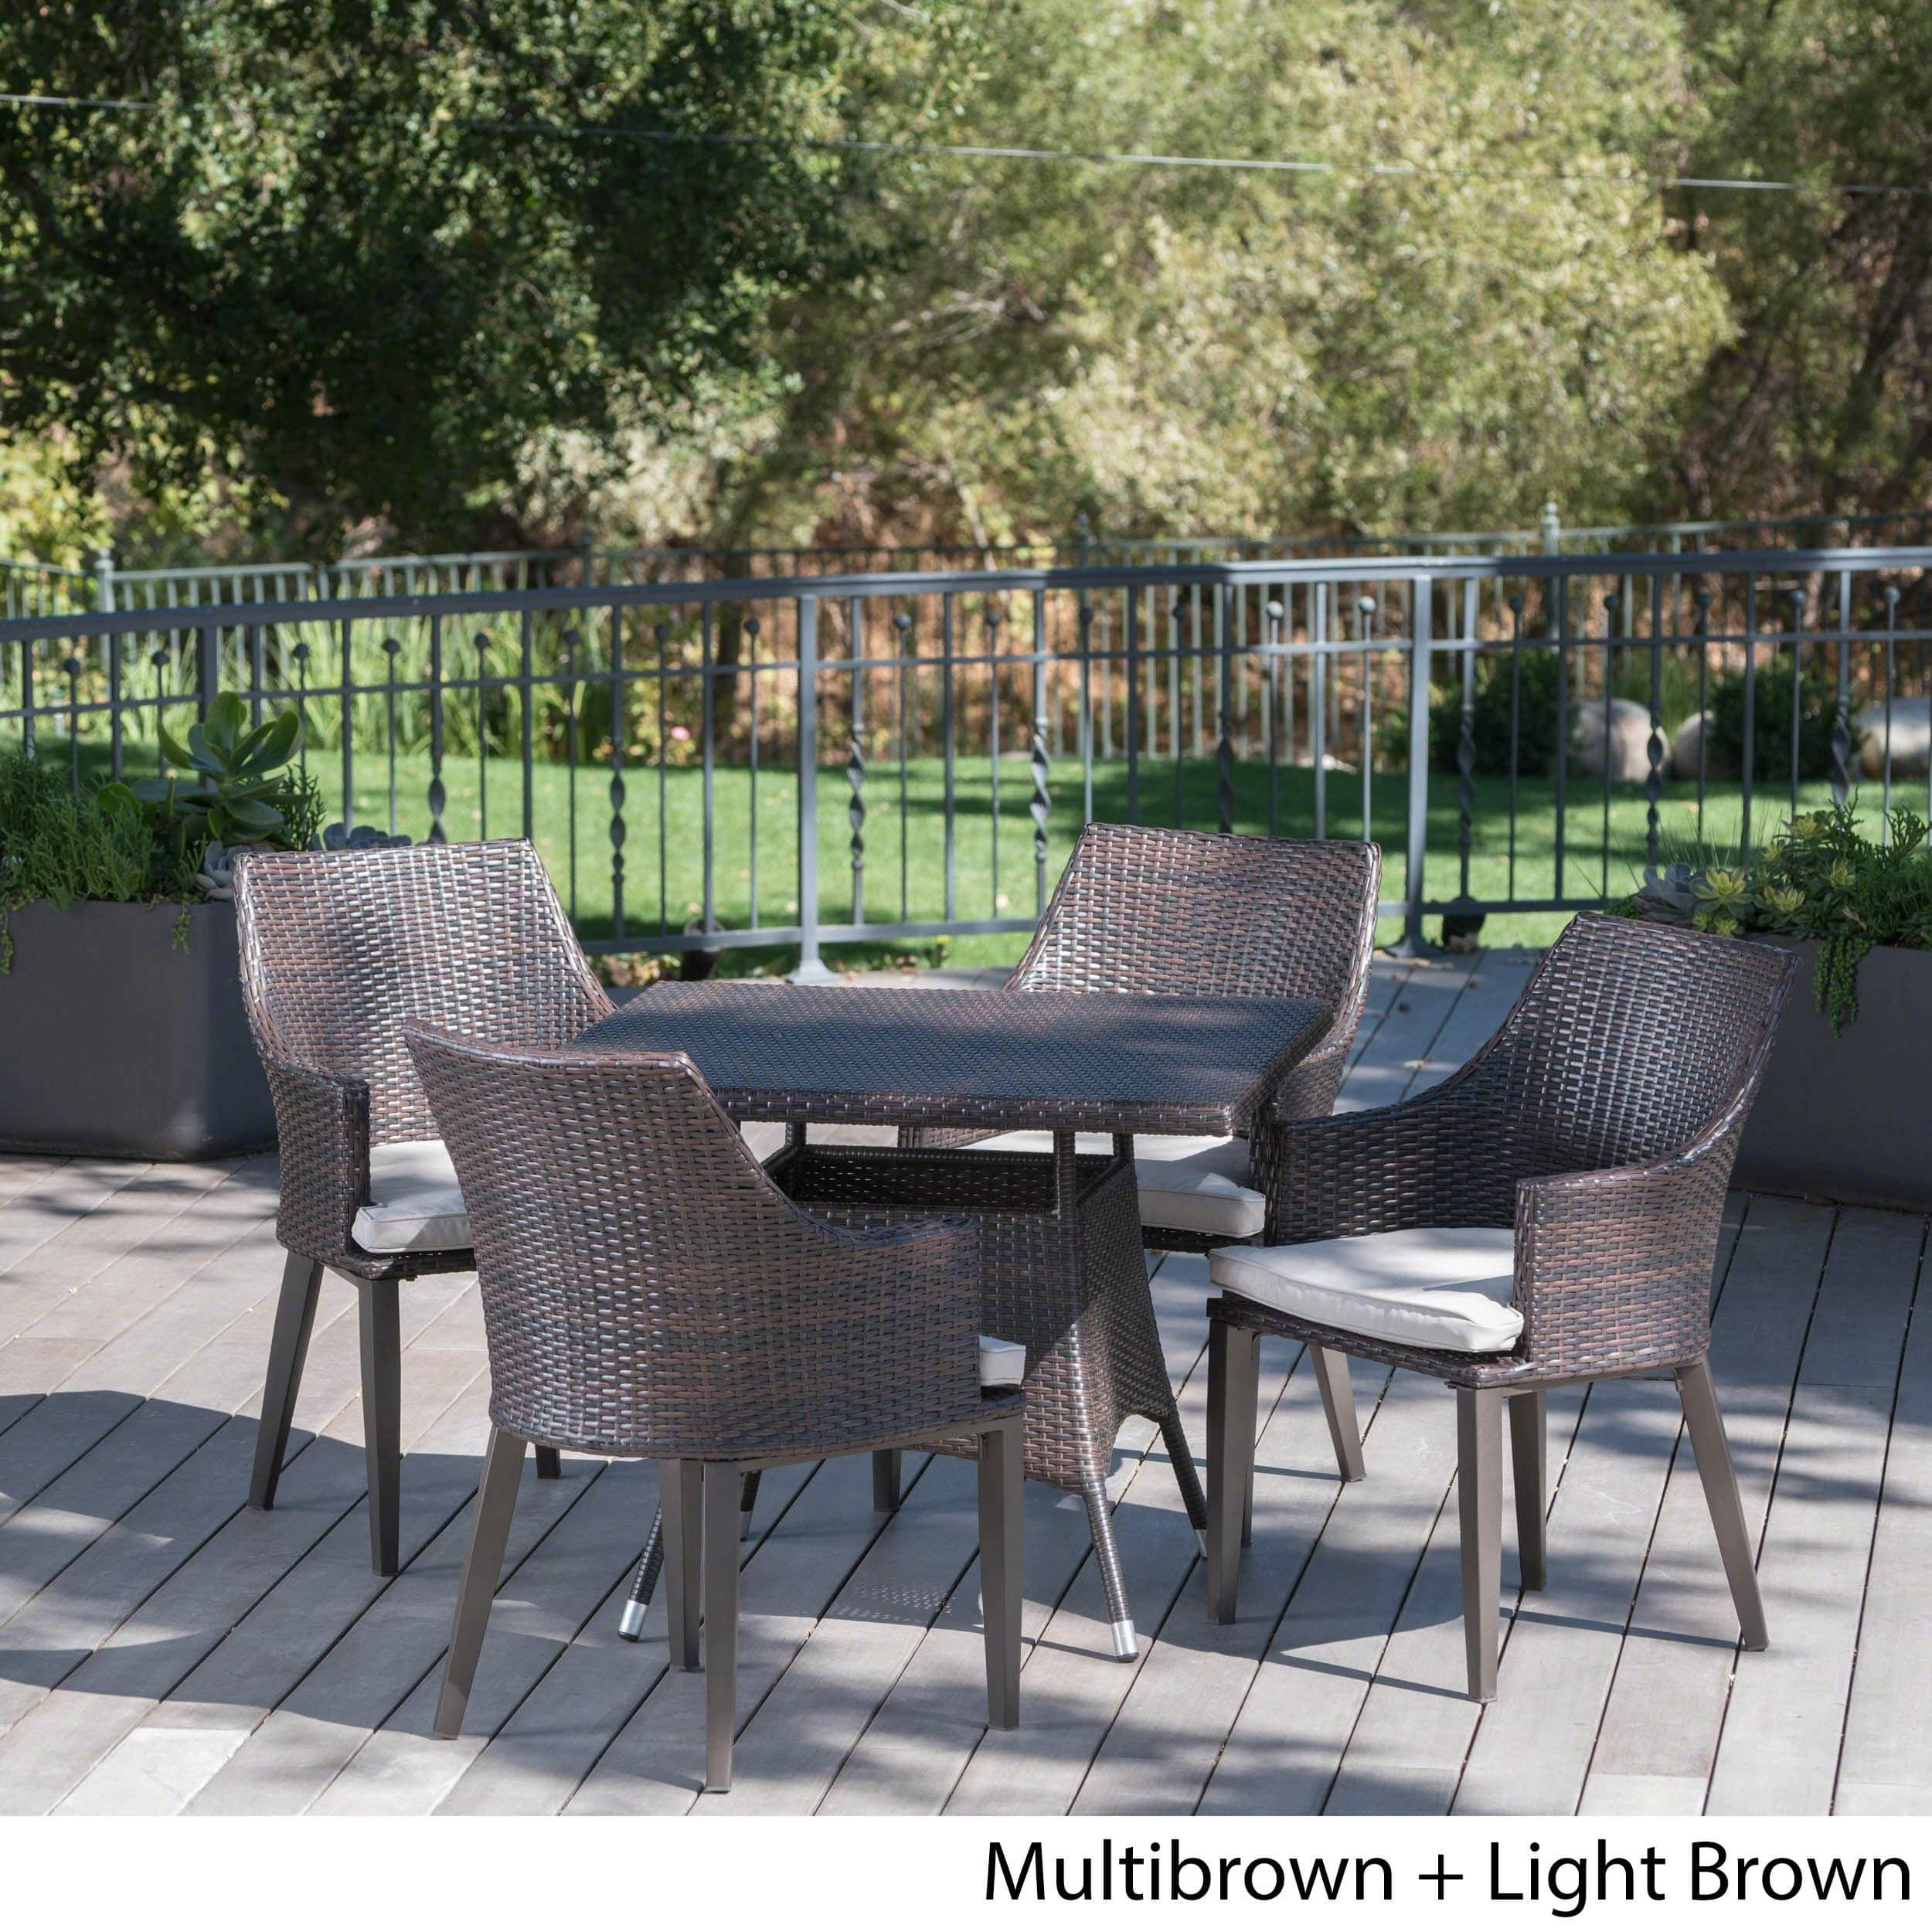 Christopher Knight Home Hillhurst Outdoor 5-piece Square Wicker Dining Set with Cushions by